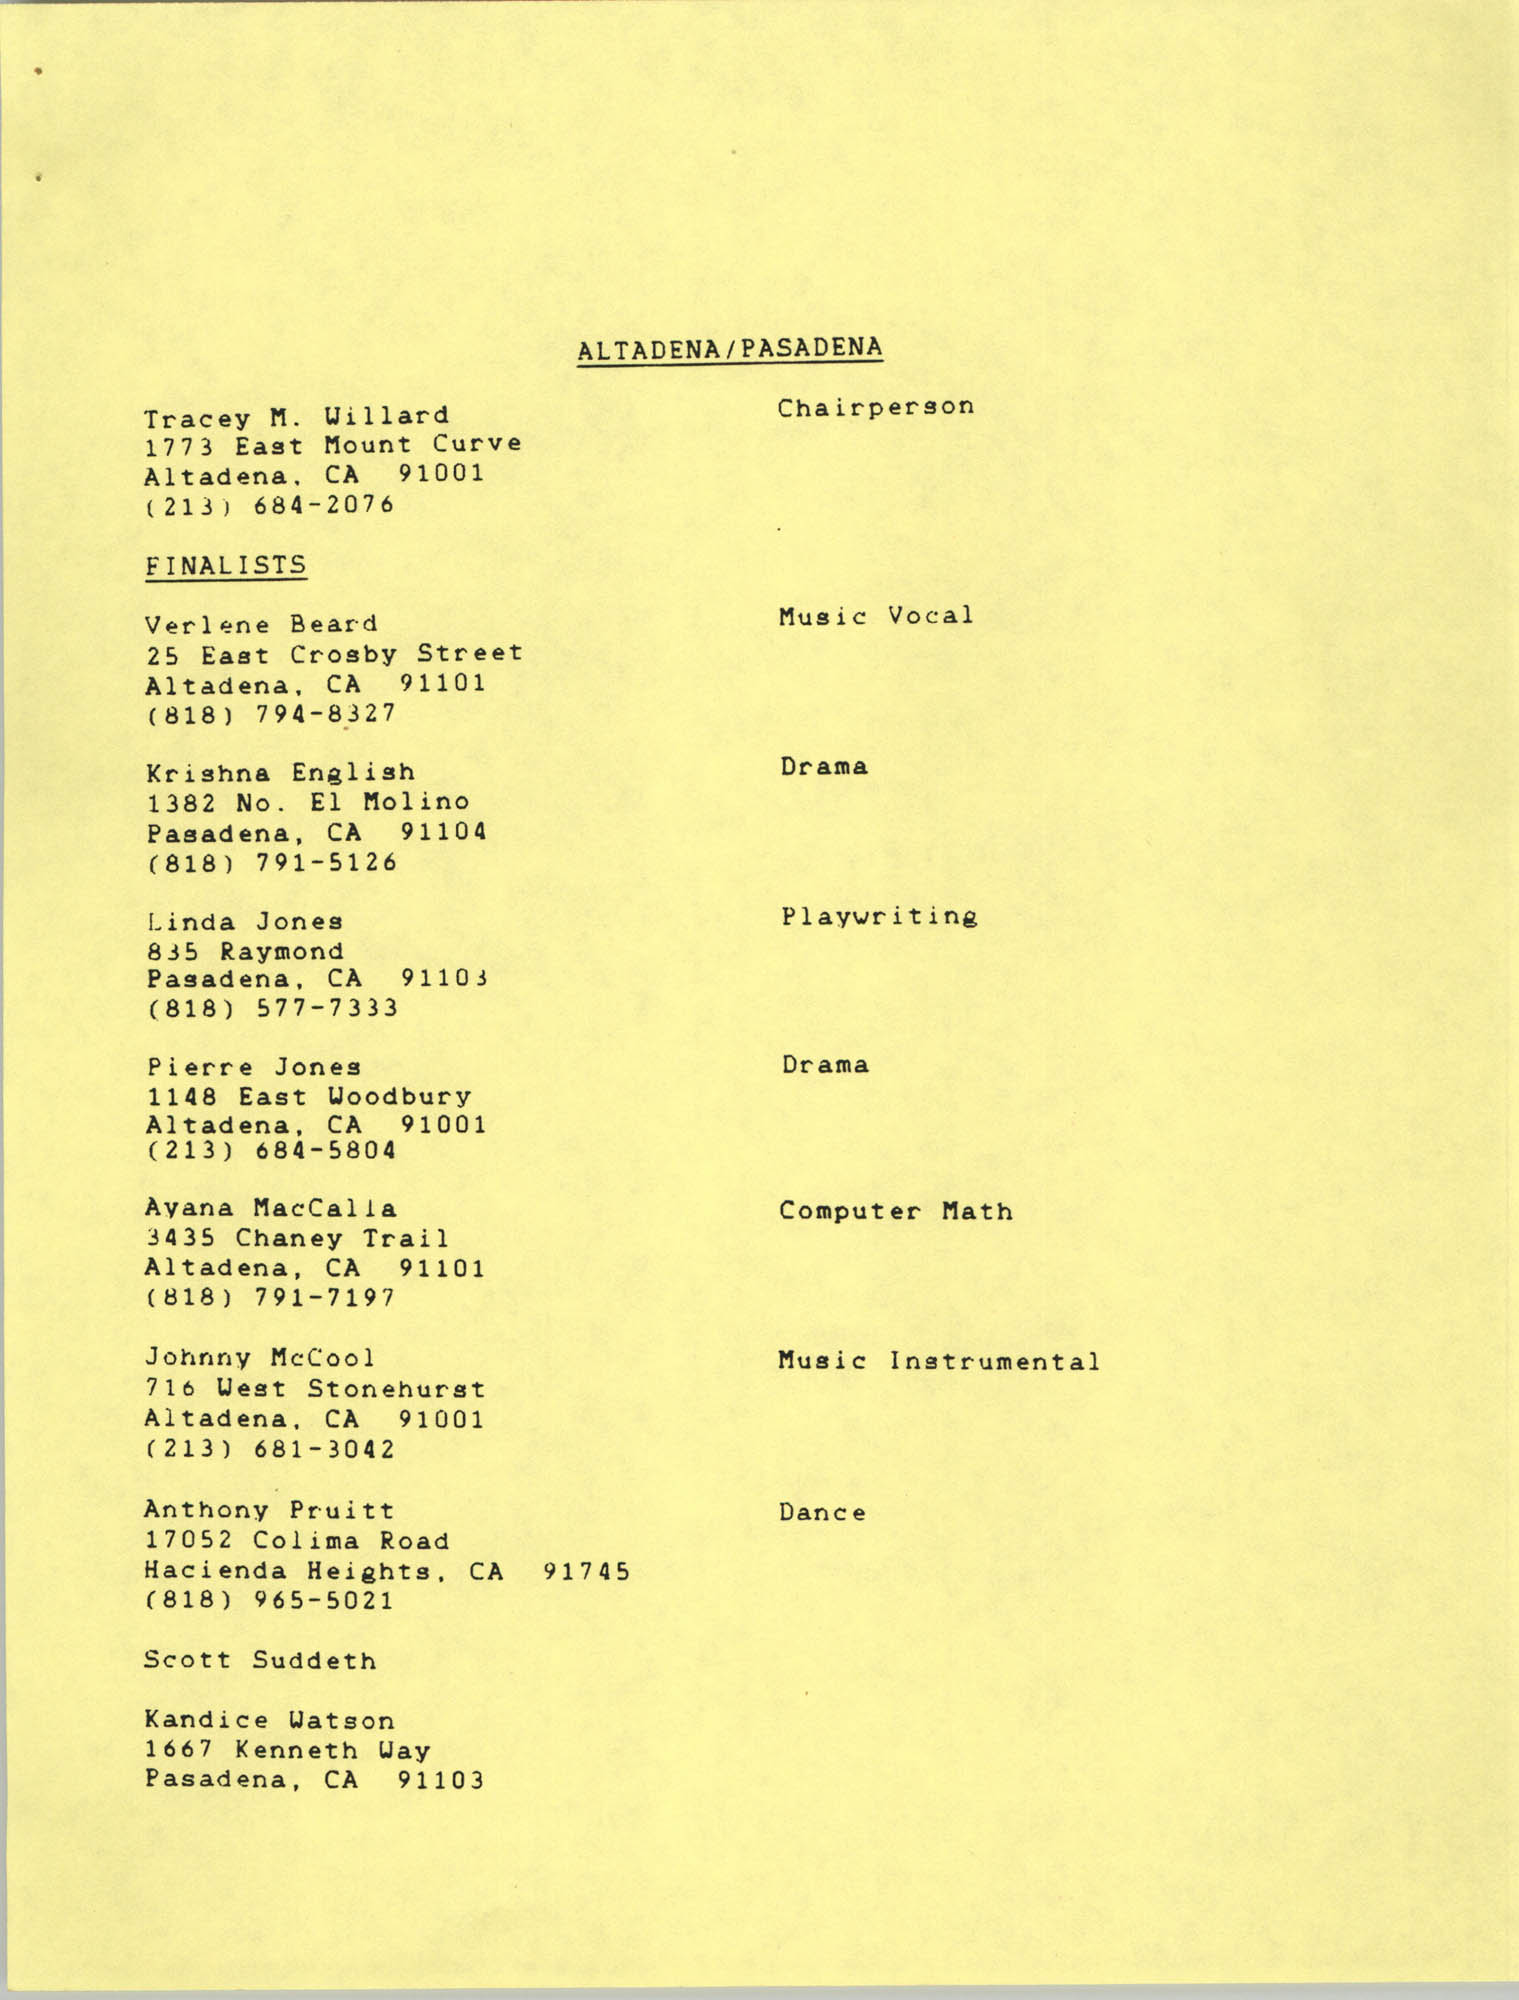 1987 Act-So Contestants, NAACP West Coast Region, Page 1